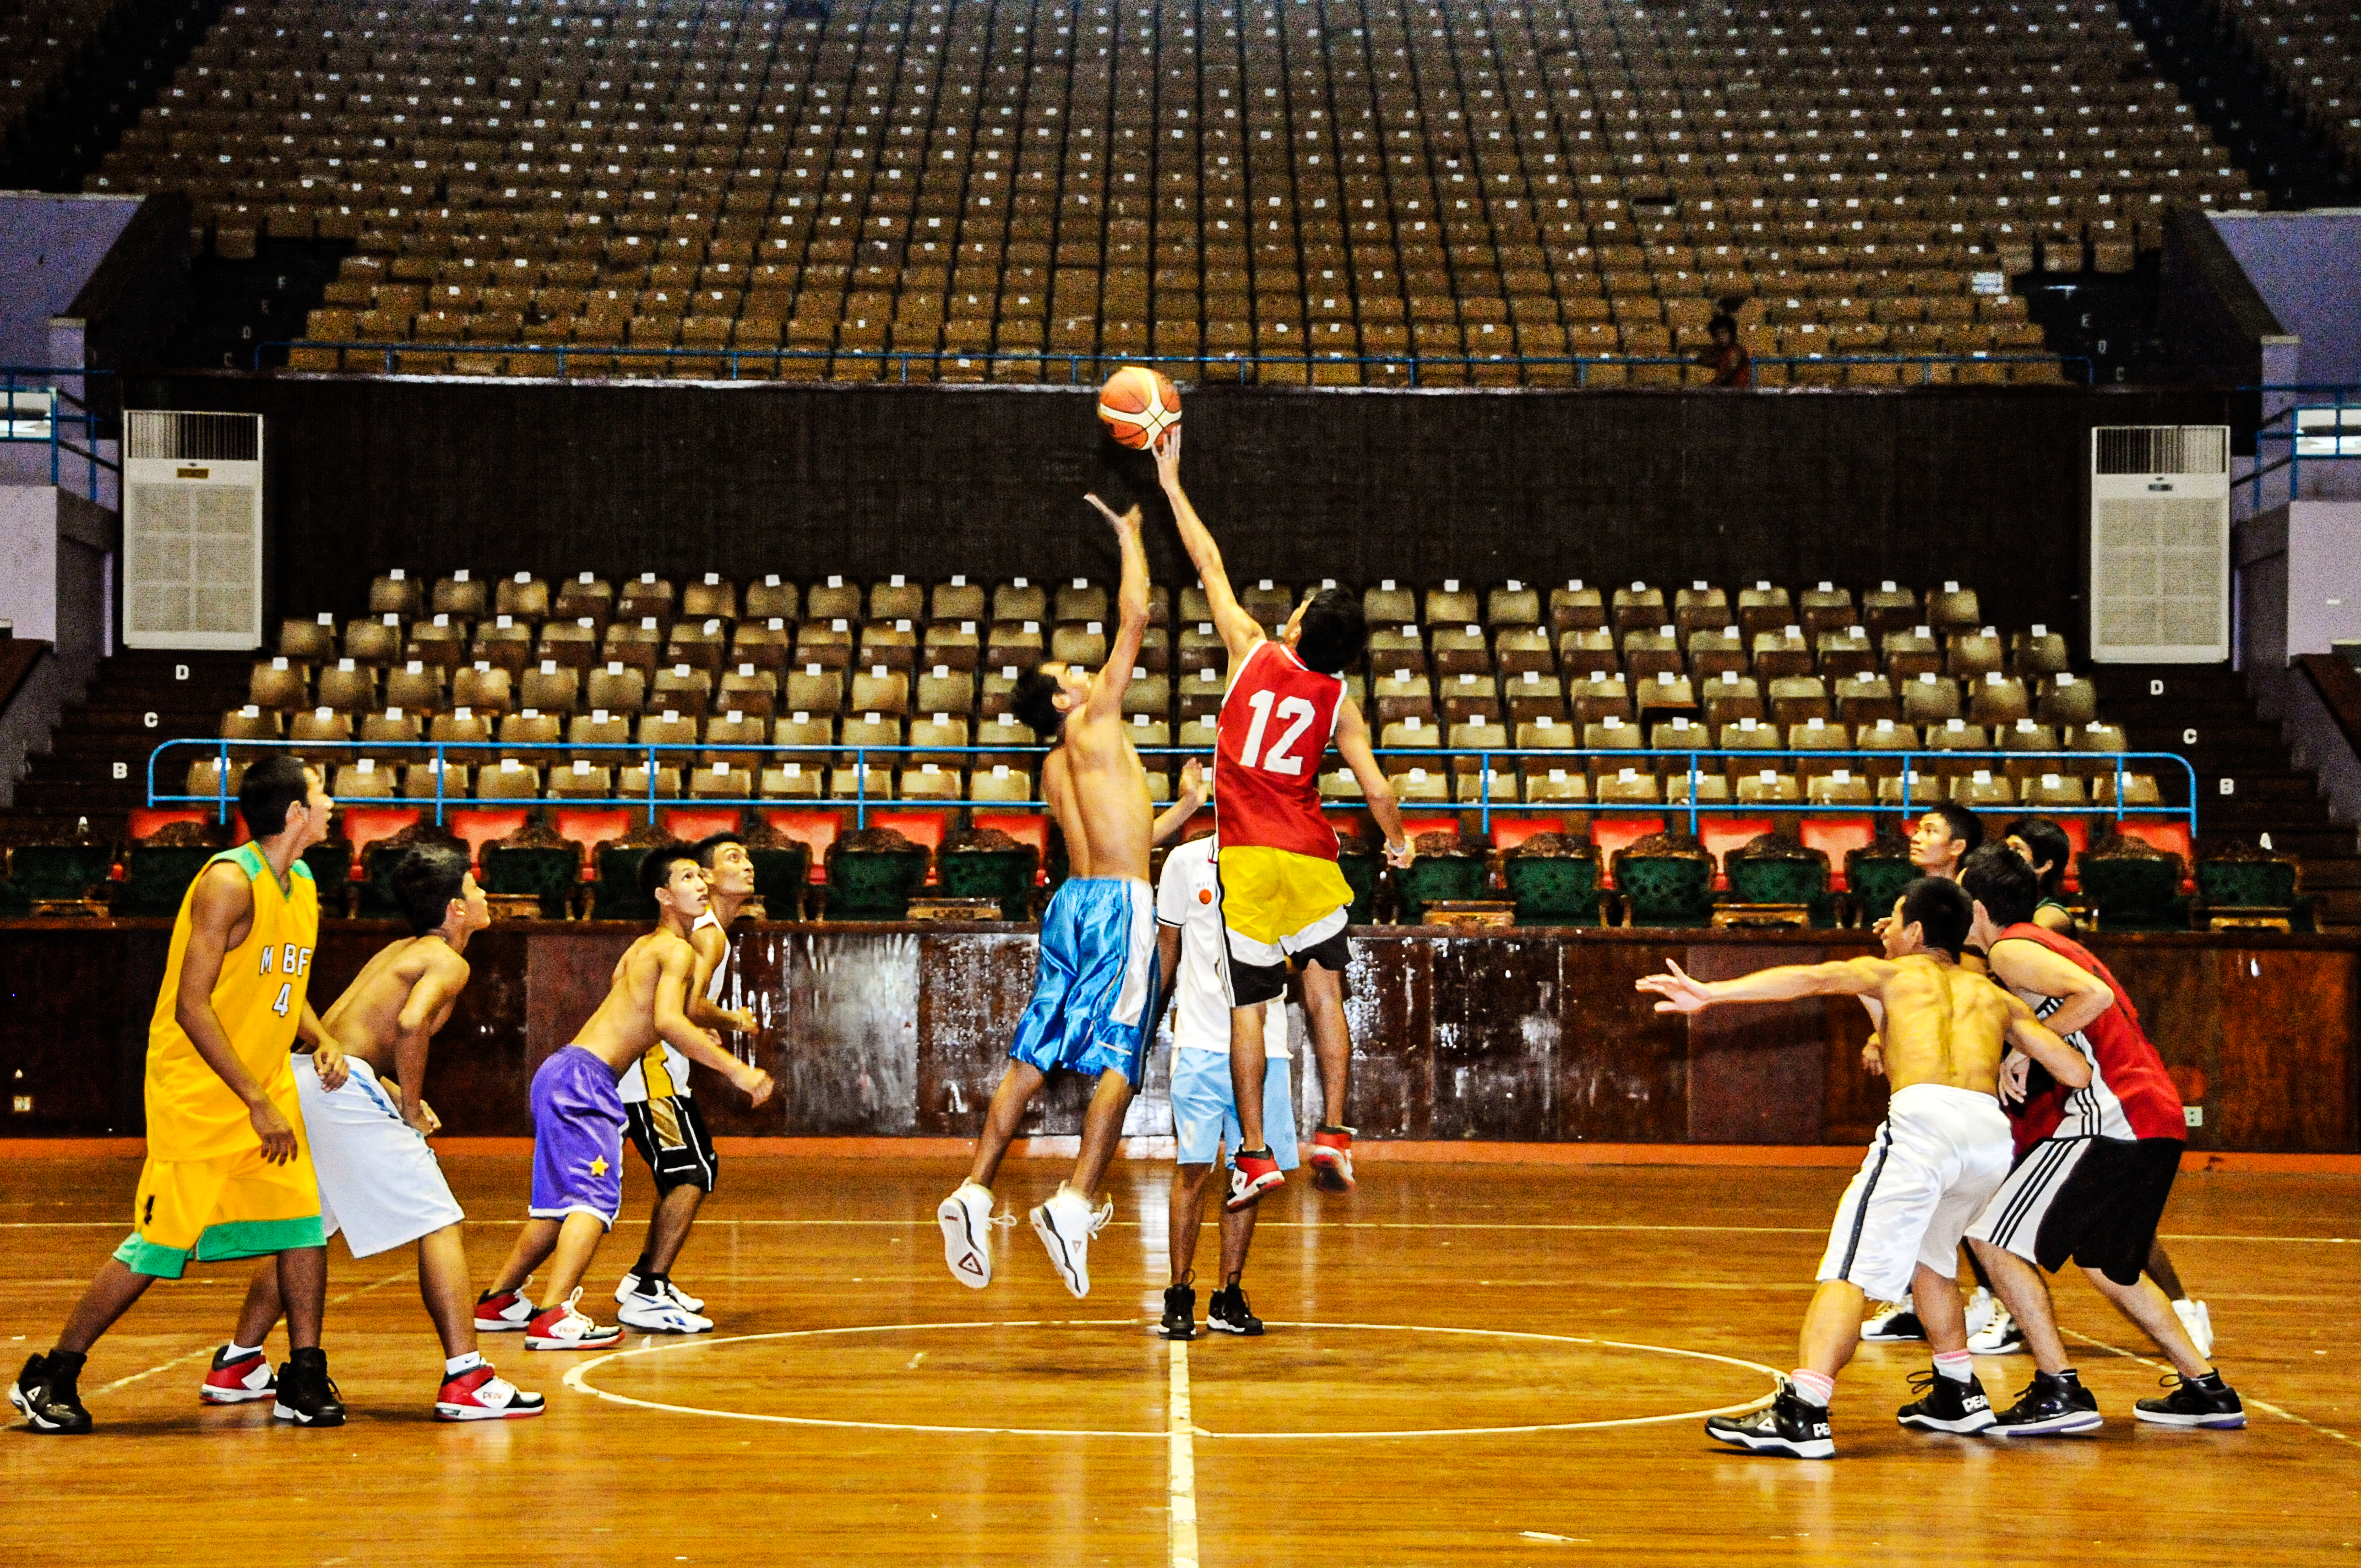 Opening Tip edited